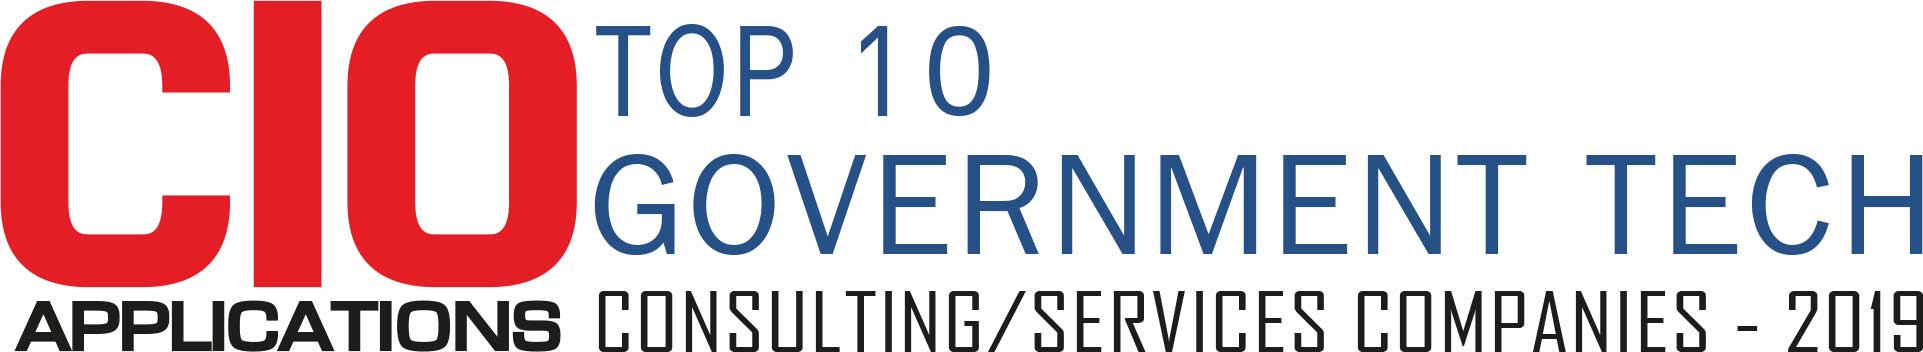 Top 10 Government Tech Consulting/Services Companies - 2019